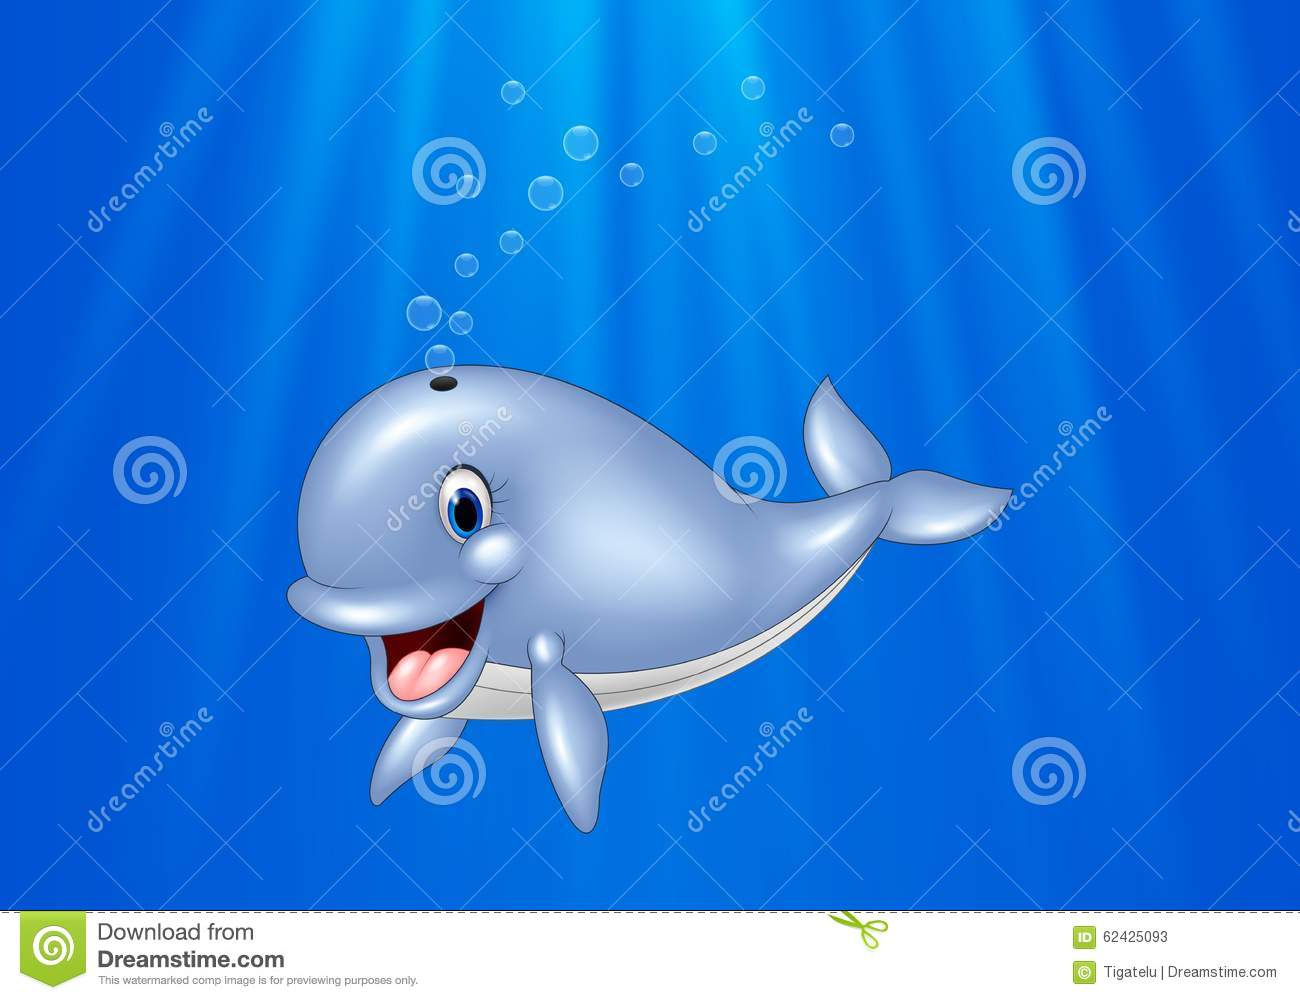 Stock Illustration Cartoon Whale Swimming Ocean Illustration Image62425093 likewise Jokes furthermore Leopard Seals  Happy Feet Two  The Video Game besides White Yak also The Page Gap. on fat cartoon whale